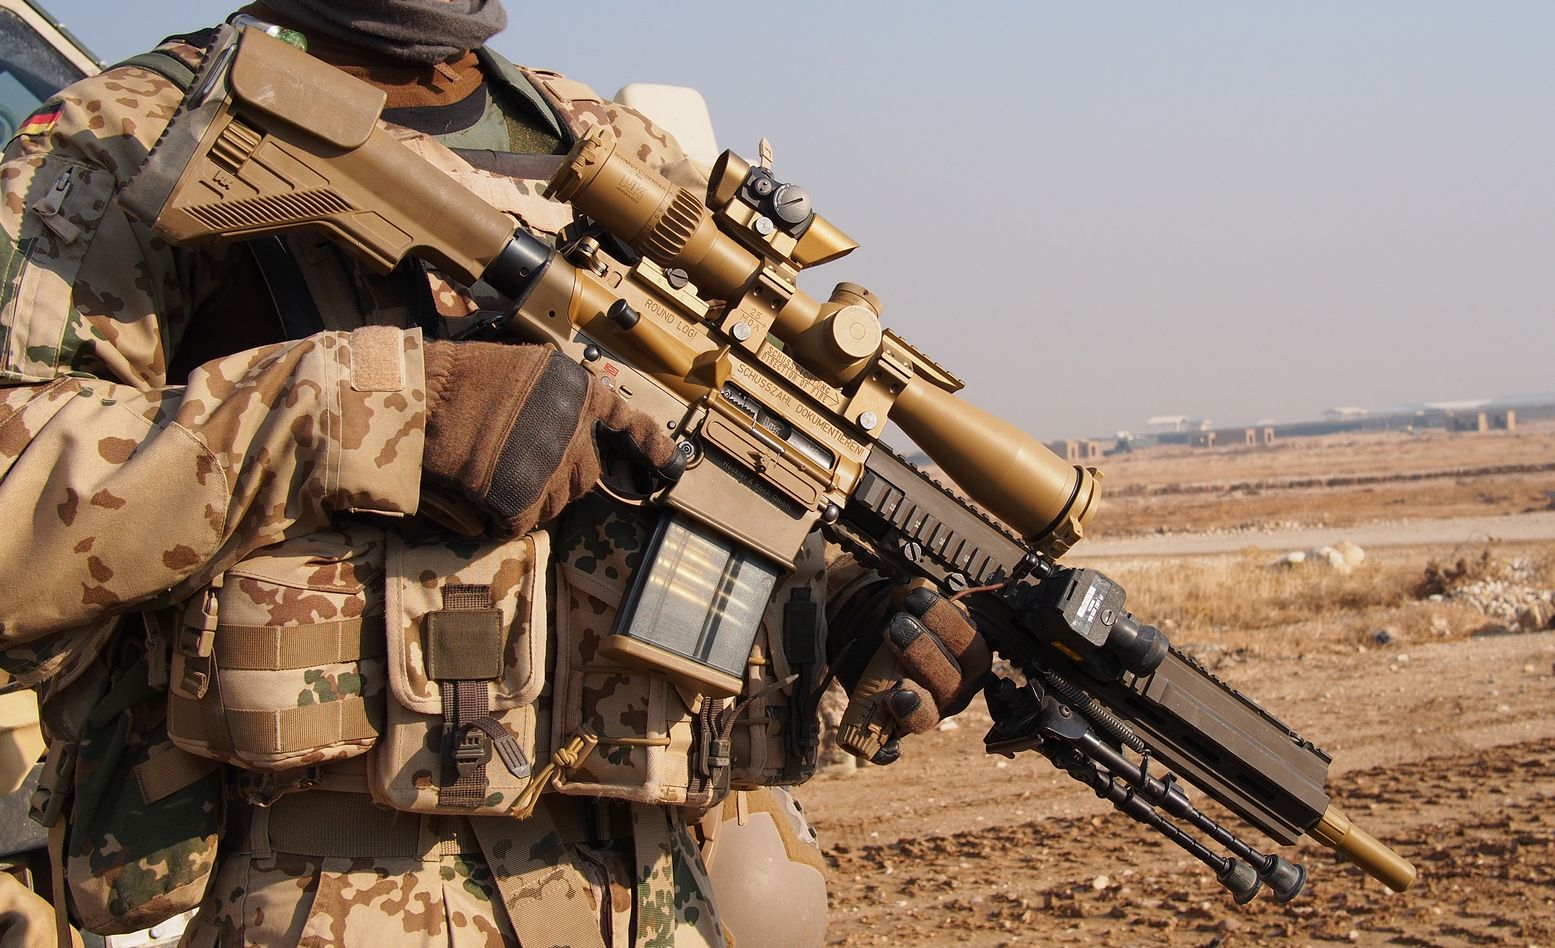 The U.S. Marines Aren't Into Their New Sniper Rifle